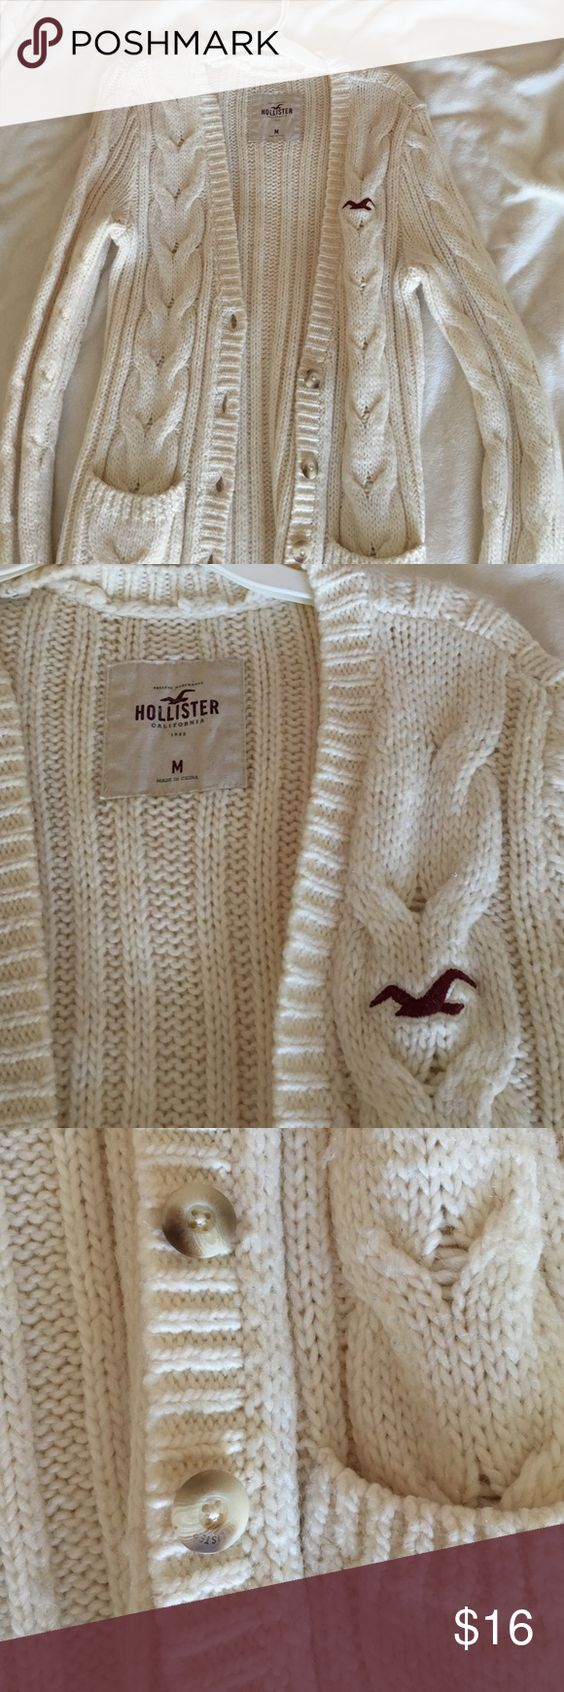 Cream Cableknit Cardigan Cream cable knit cardigan from Hollister. Super cozy, I bought a M for an oversized fit. Perfect condition, only worn once or twice Hollister Sweaters Cardigans